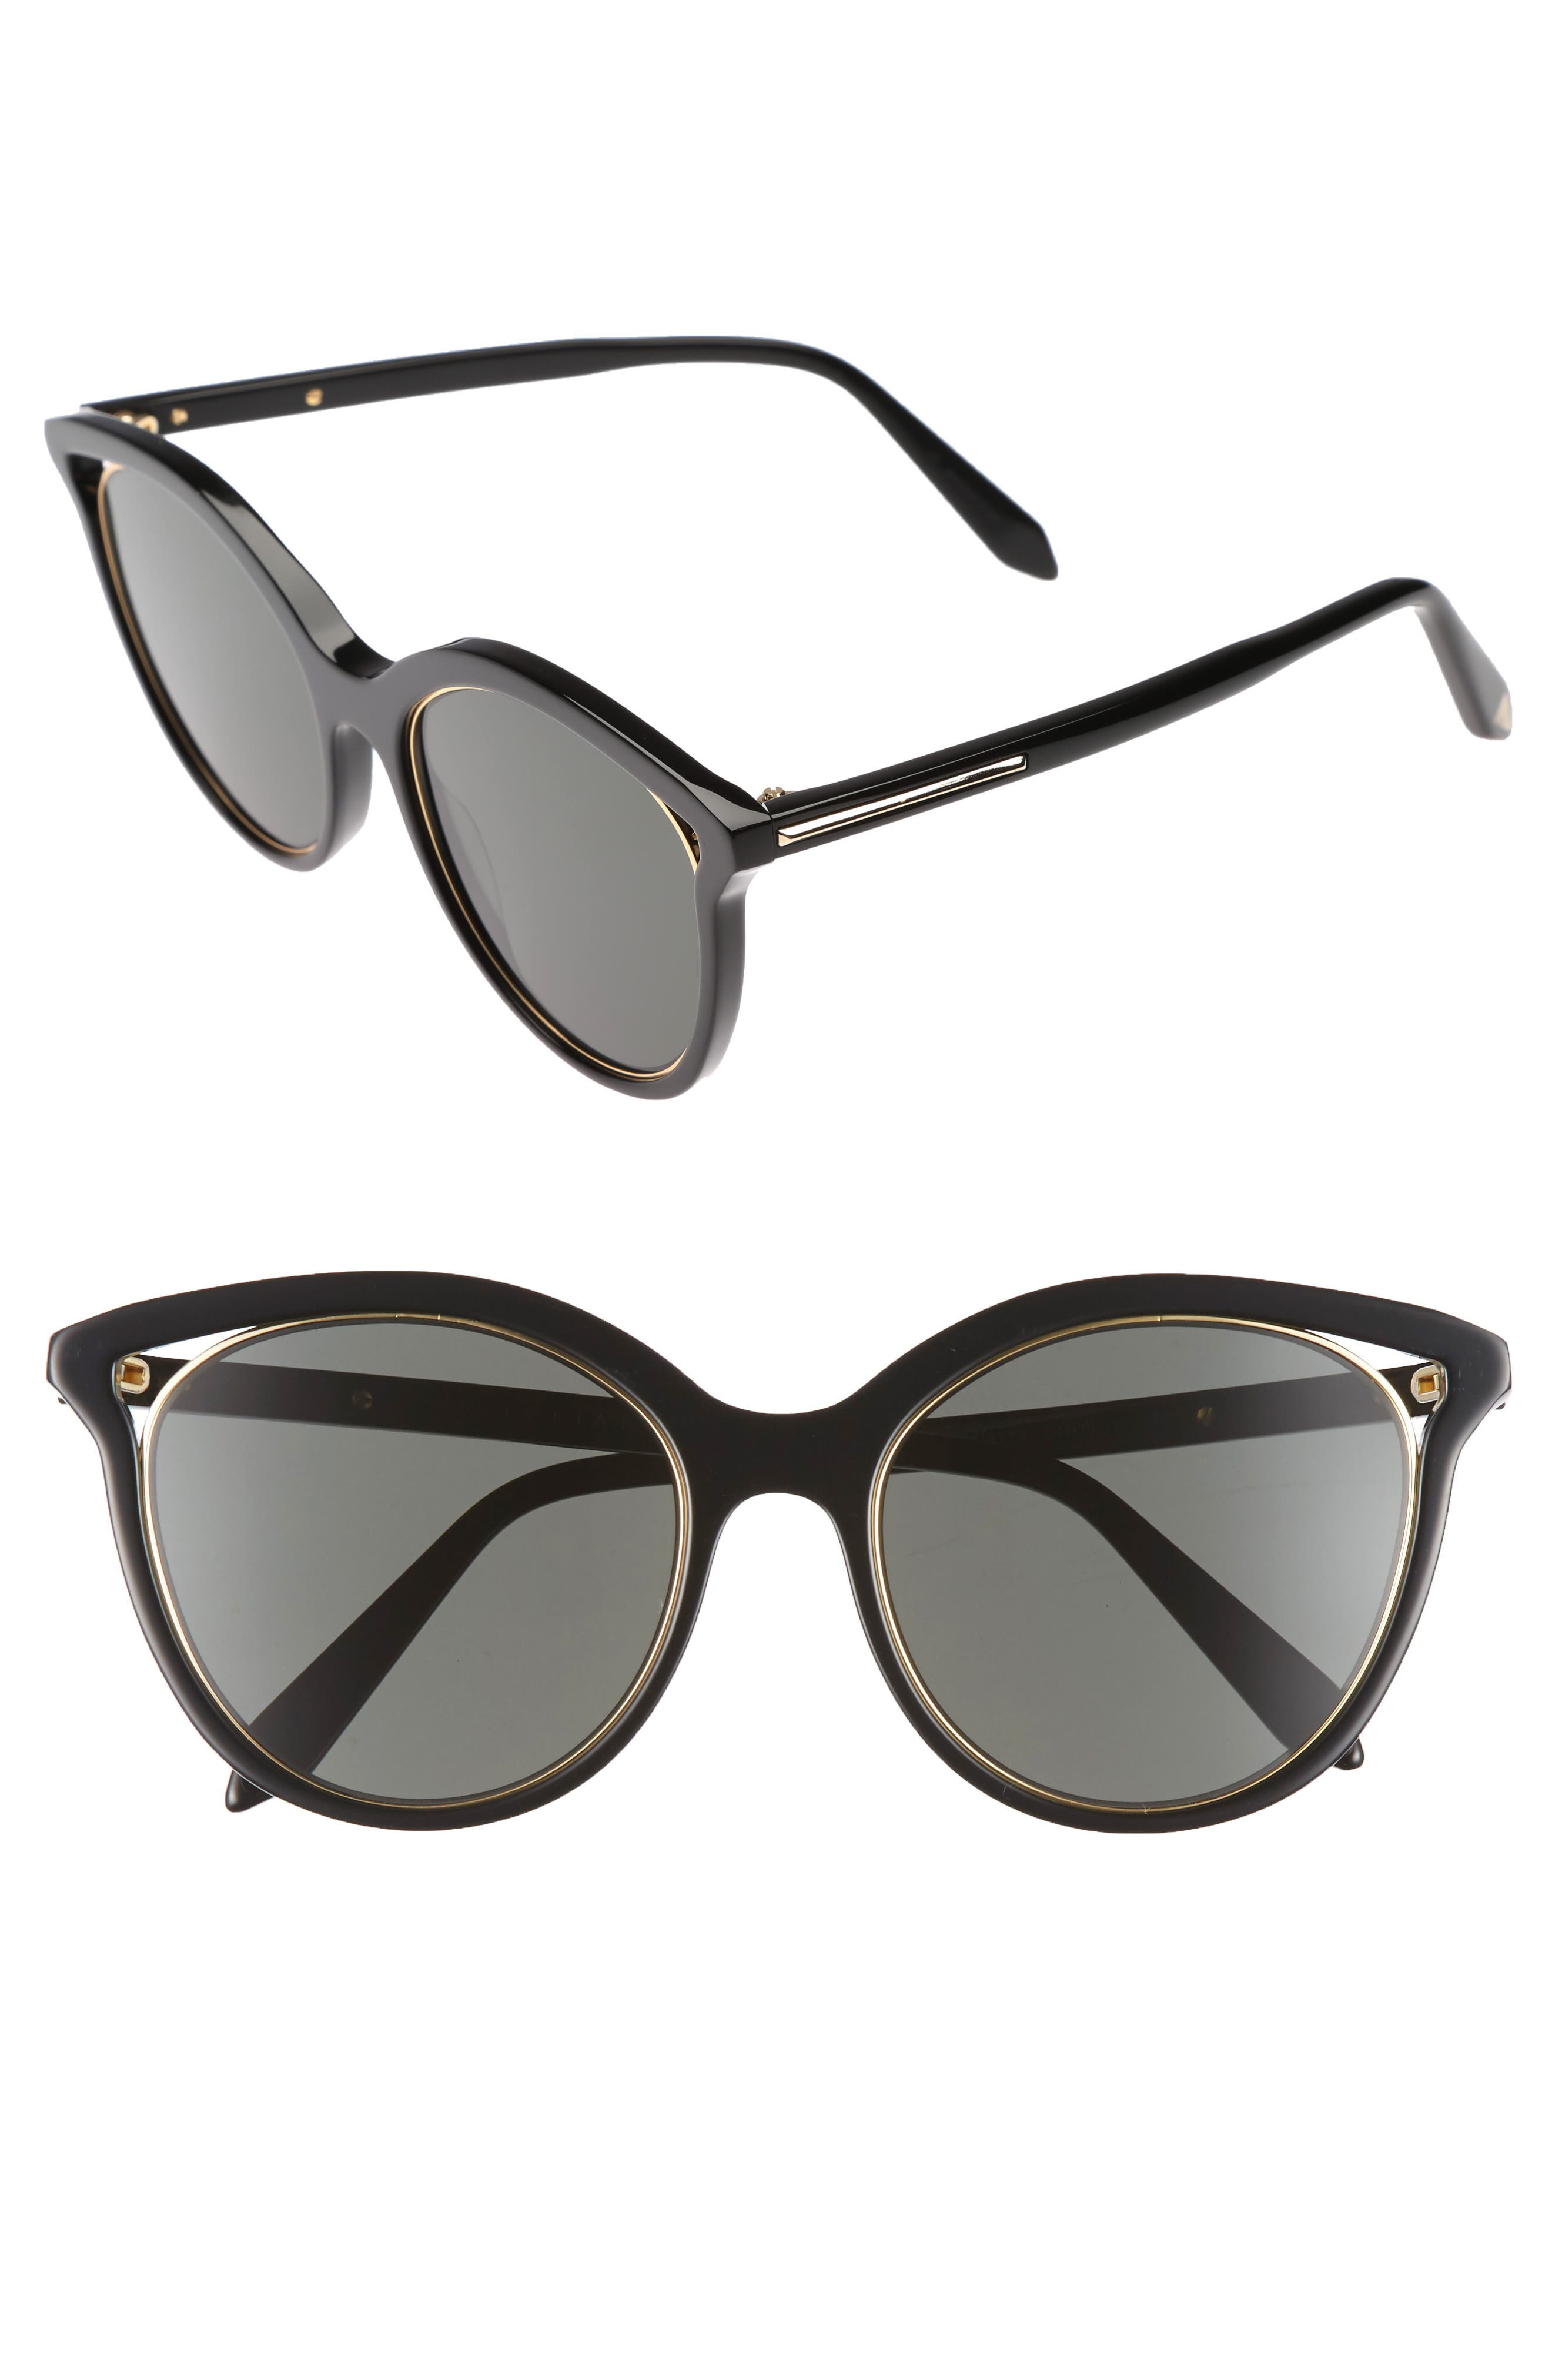 Cutaway Kitten 54mm Cat Eye Sunglasses,                         Main,                         color, BLACK/ GOLD